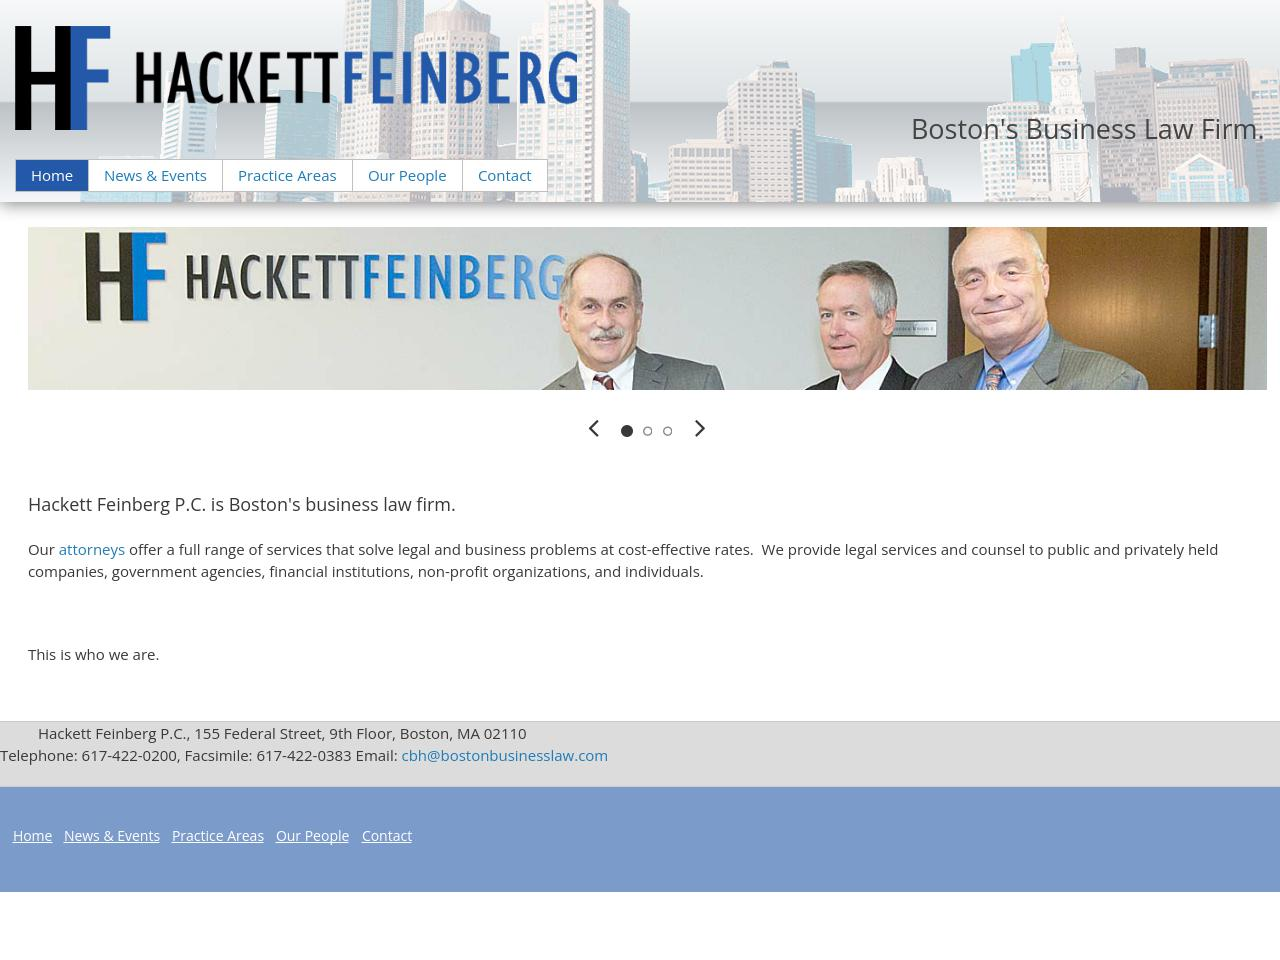 Bartlett Hackett Feinberg P.C. - Boston MA Lawyers